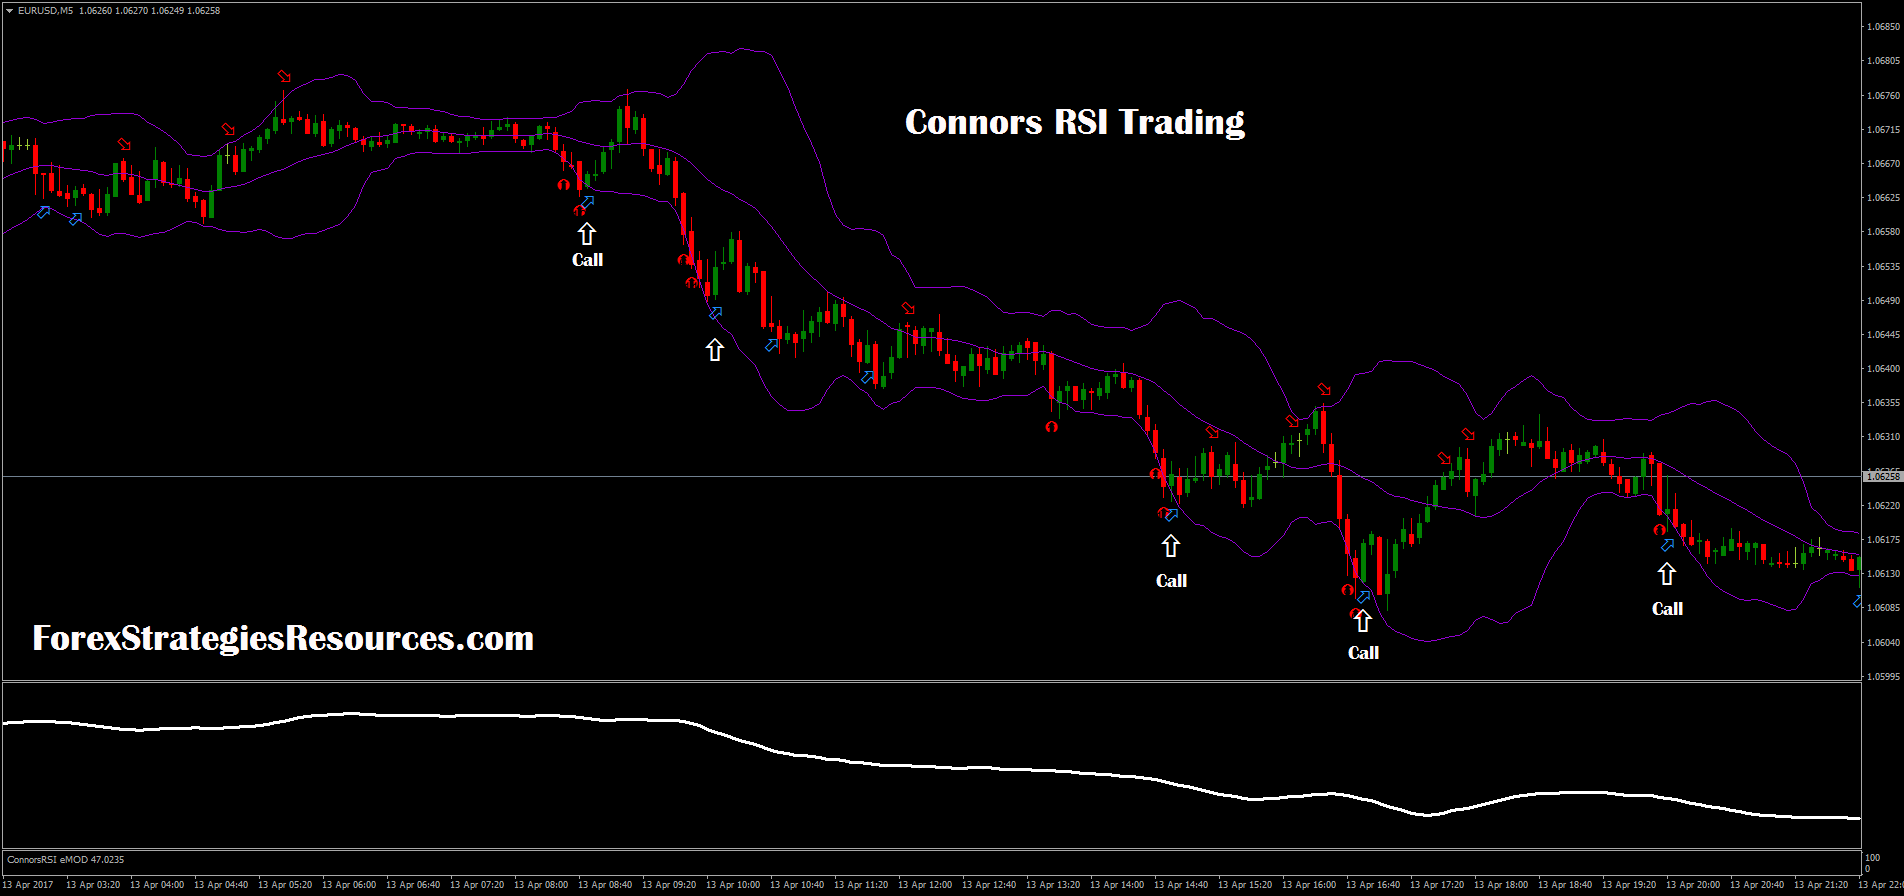 197# Connors RSI Trading - Forex Strategies - Forex